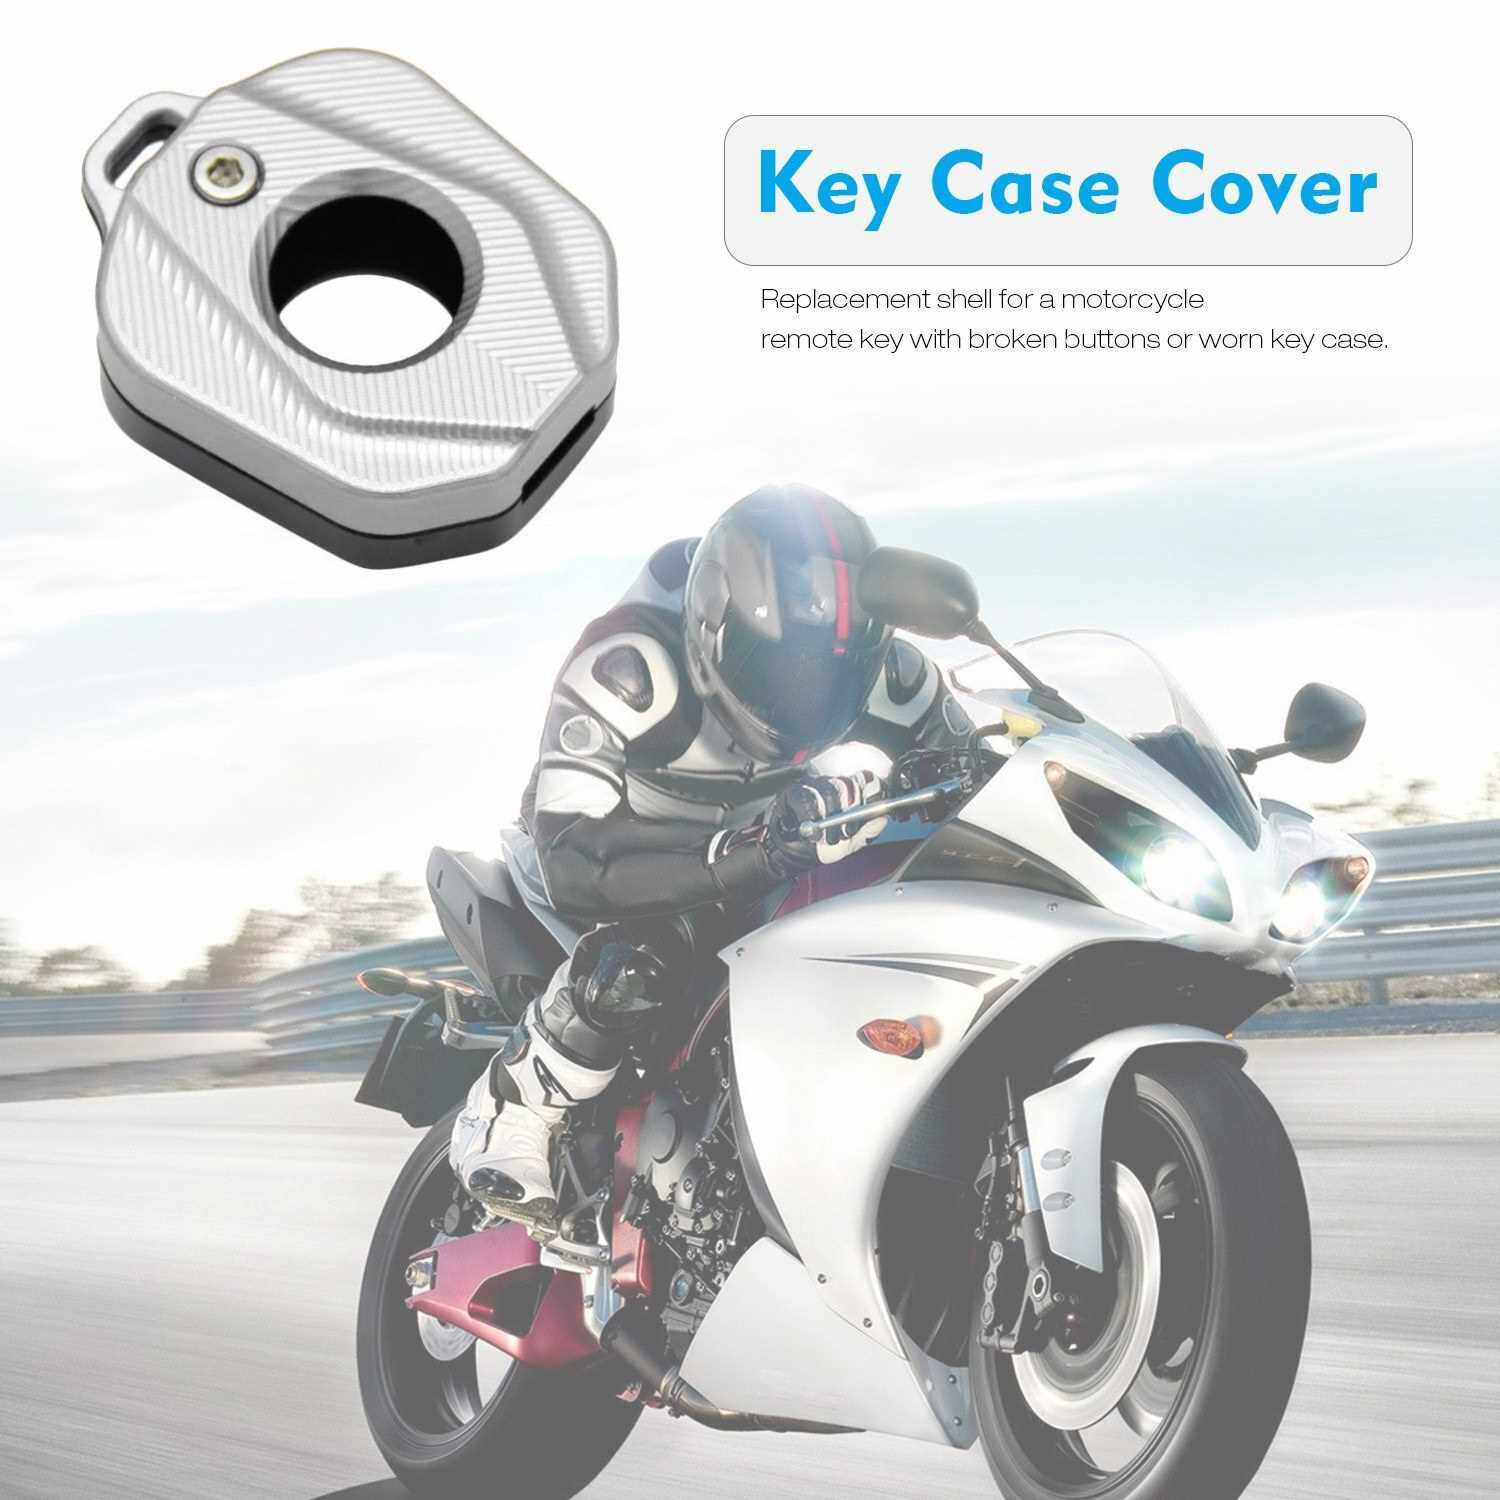 Aluminum Key Case Cover Shell Key Blade Motorcycle Key Case Decorative Protector Cover Replacement for Honda (Silver)